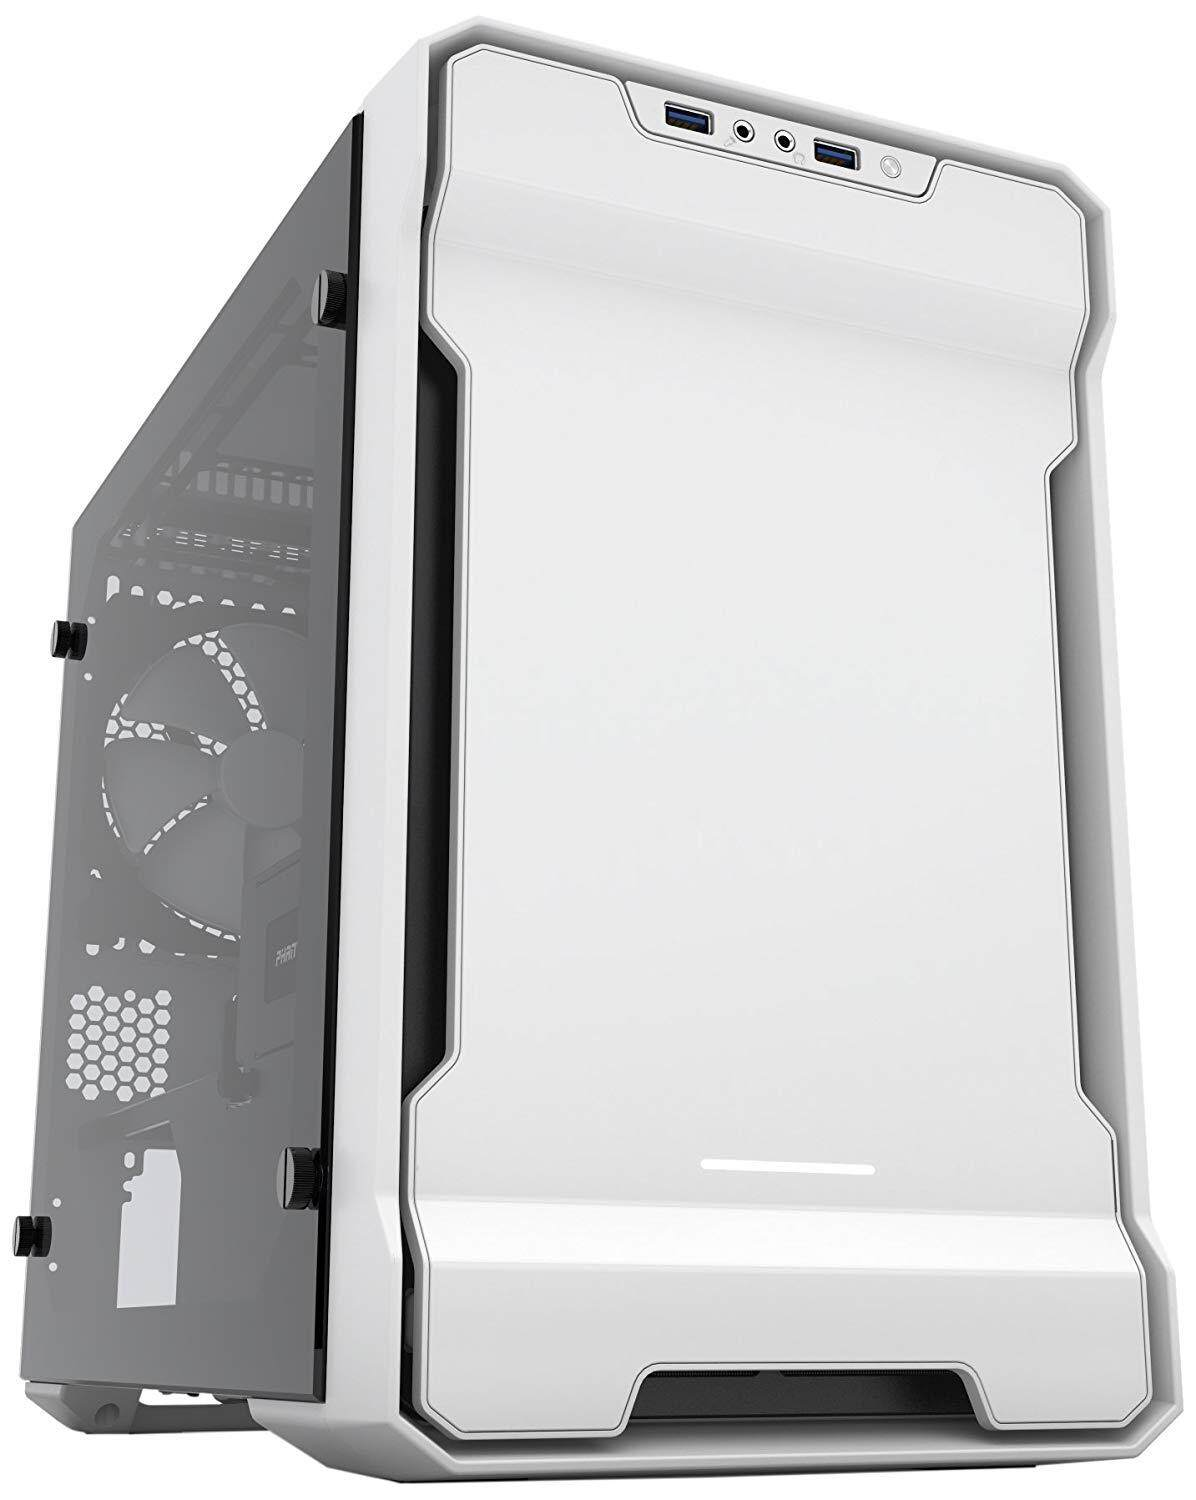 PHANTEKS ENTHOO EVOLV ITX TEMPERED GLASS WHITE CHASSIS Malaysia